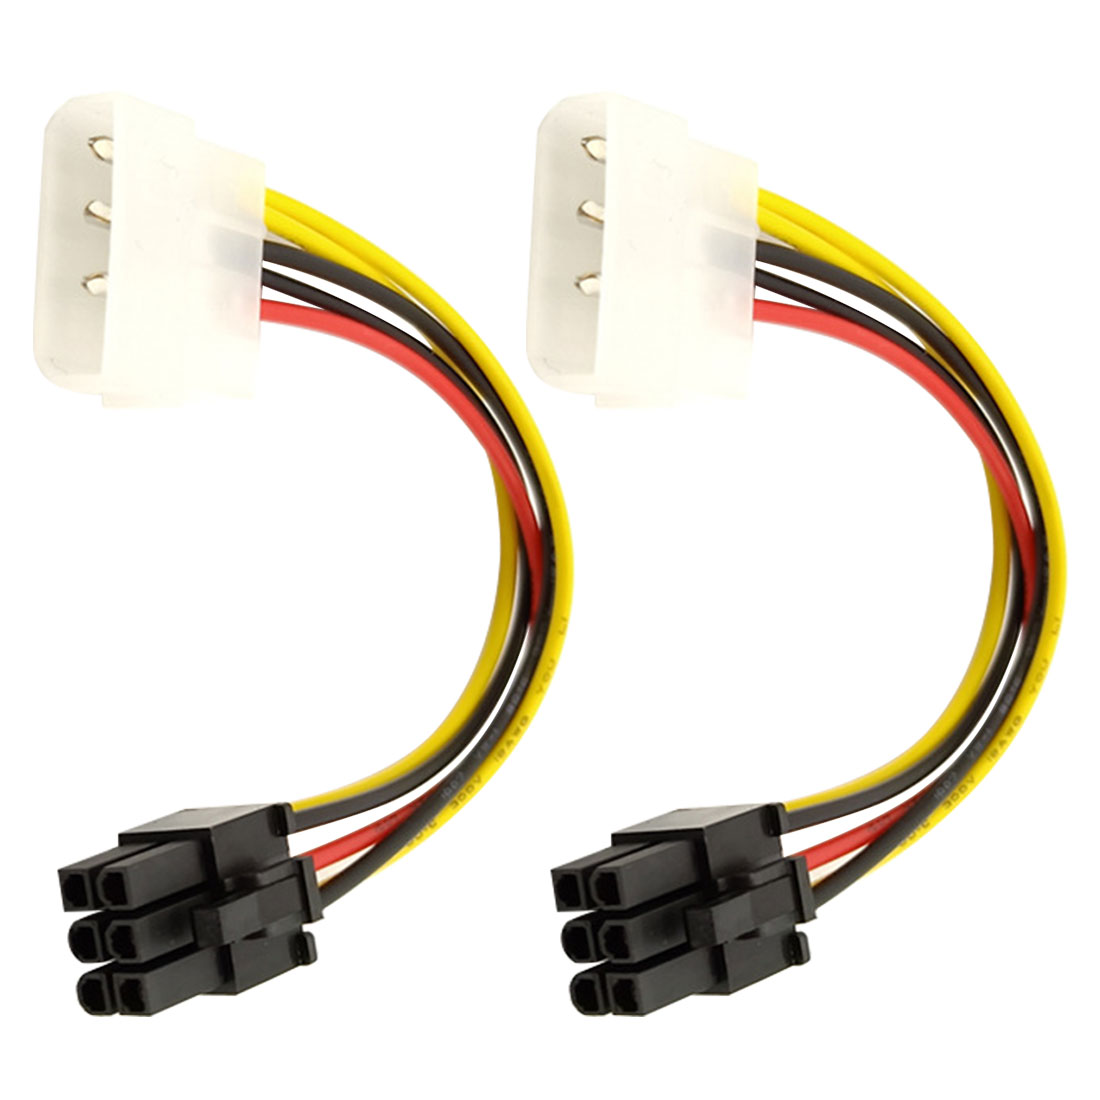 Centechia New High Quality 4 Pin Molex To 6 Pin PCI-Express PCIE Video Card Power Converter Adapter Cable 20CM